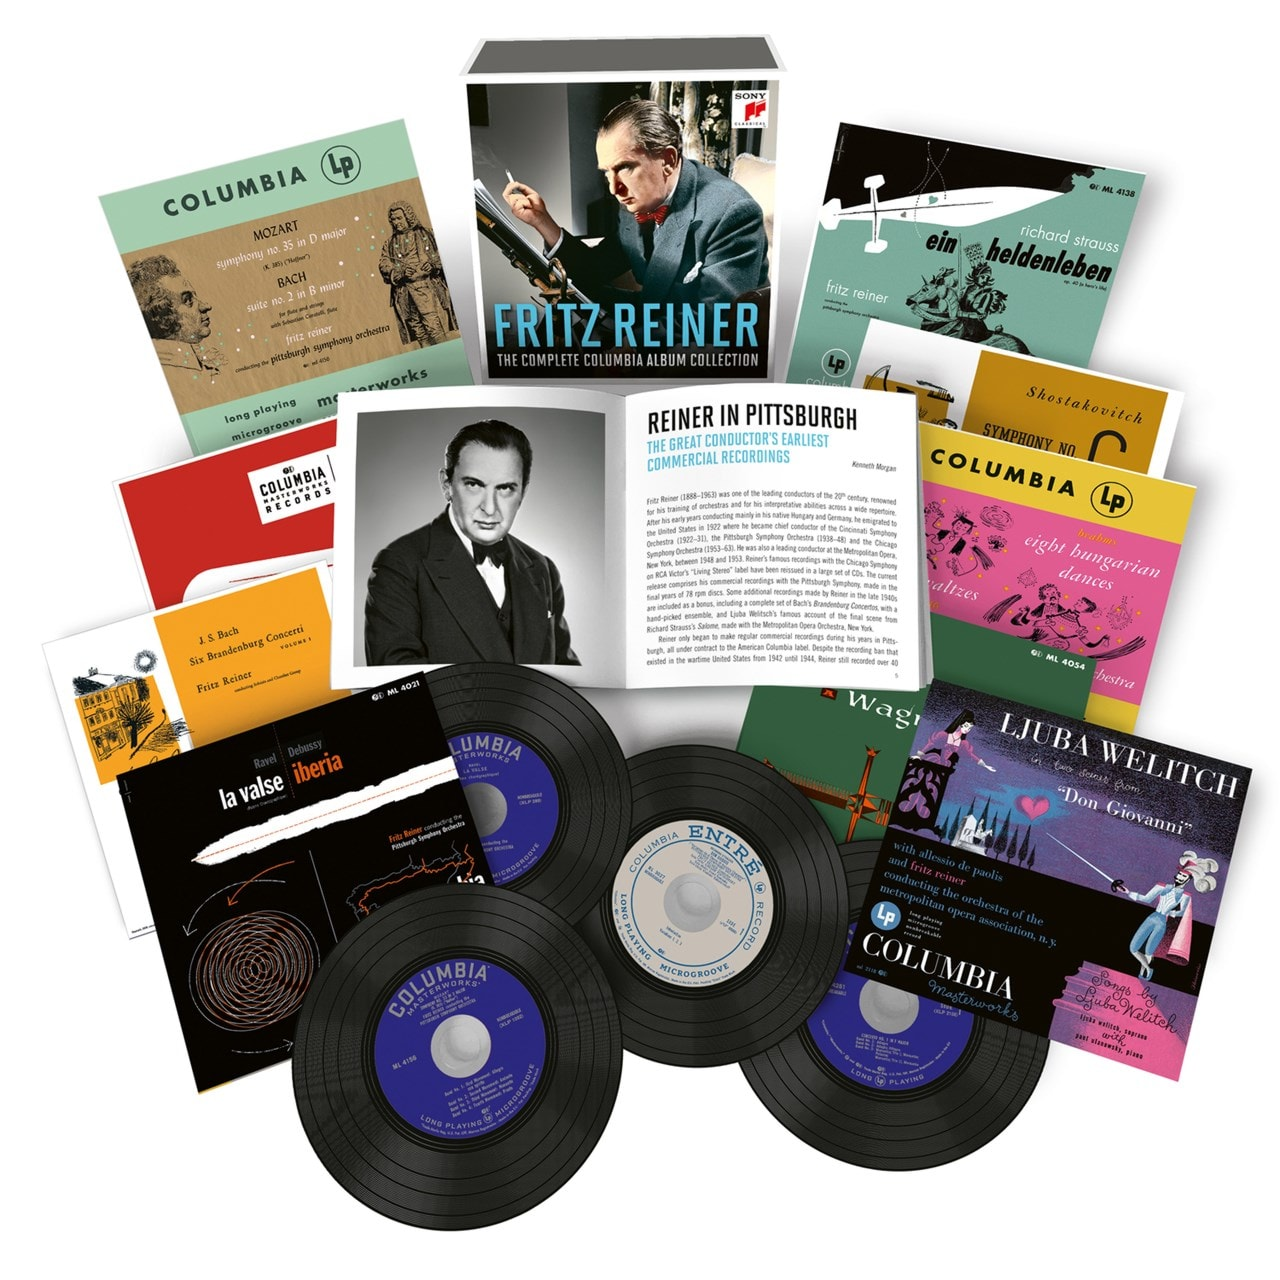 Fritz Reiner: The Complete Columbia Album Collection - 1